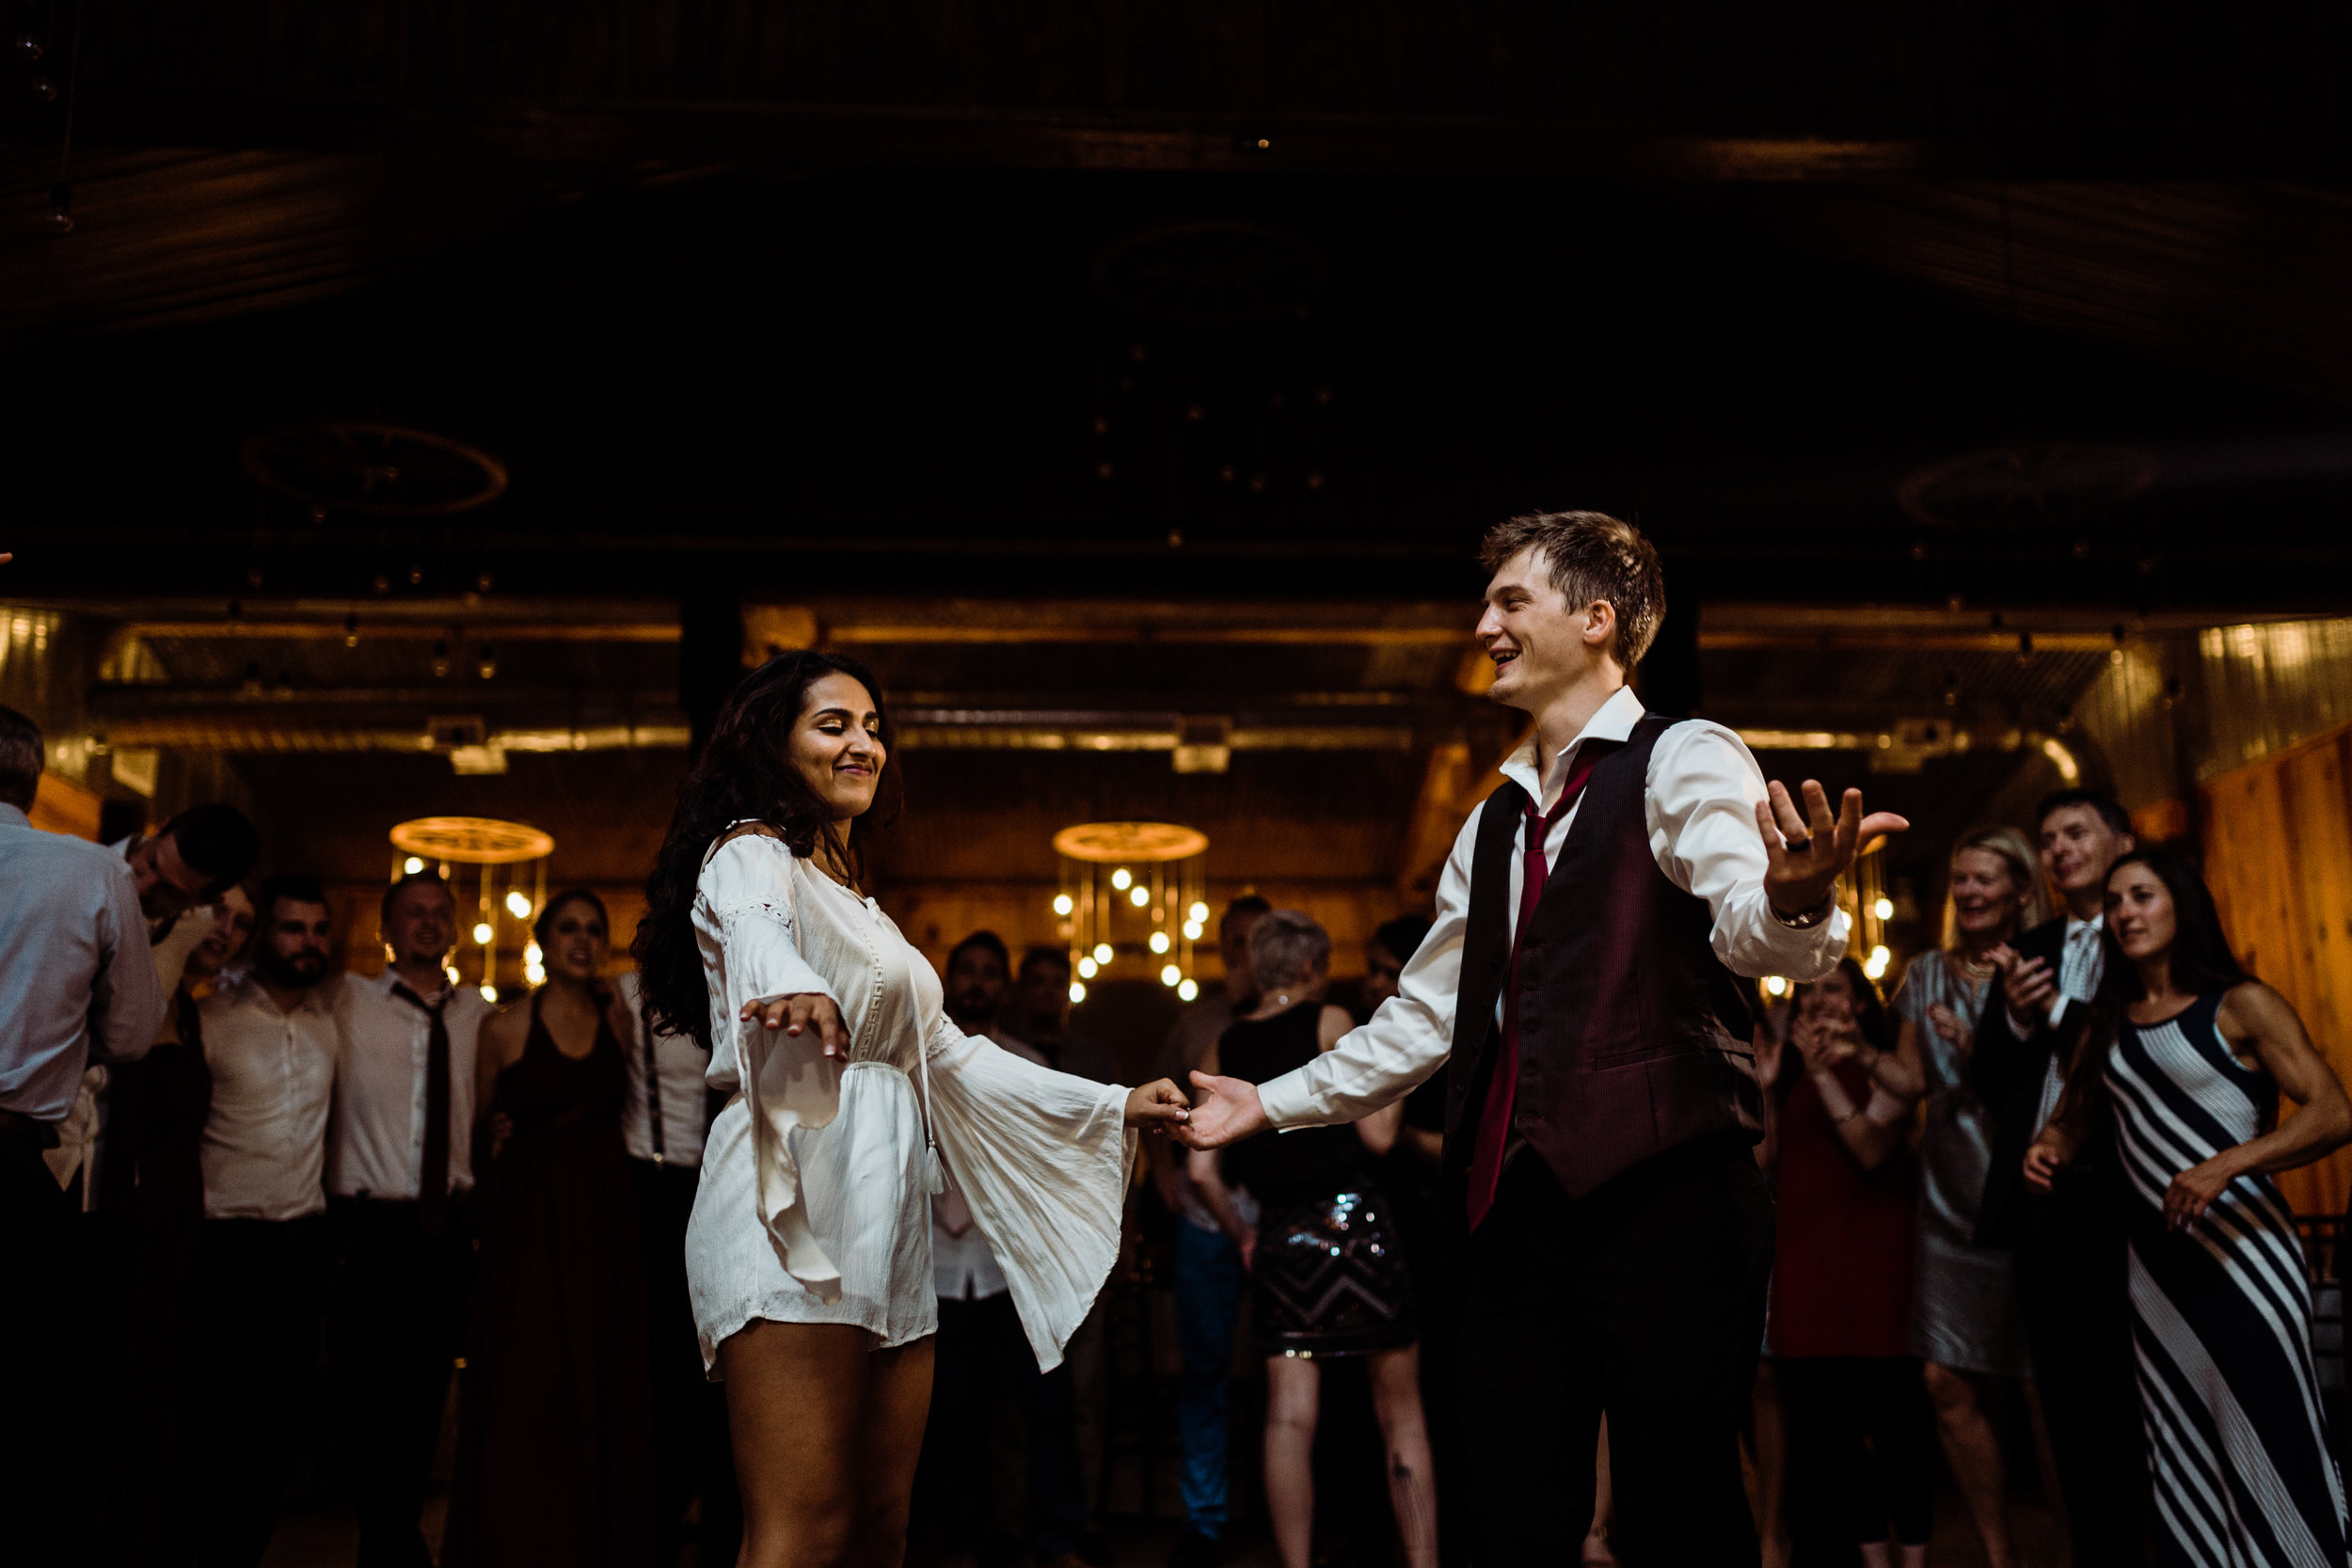 2017.10.08 Zach and Ashley Courson Wedding Club Lake Plantation (1009 of 1079).jpg